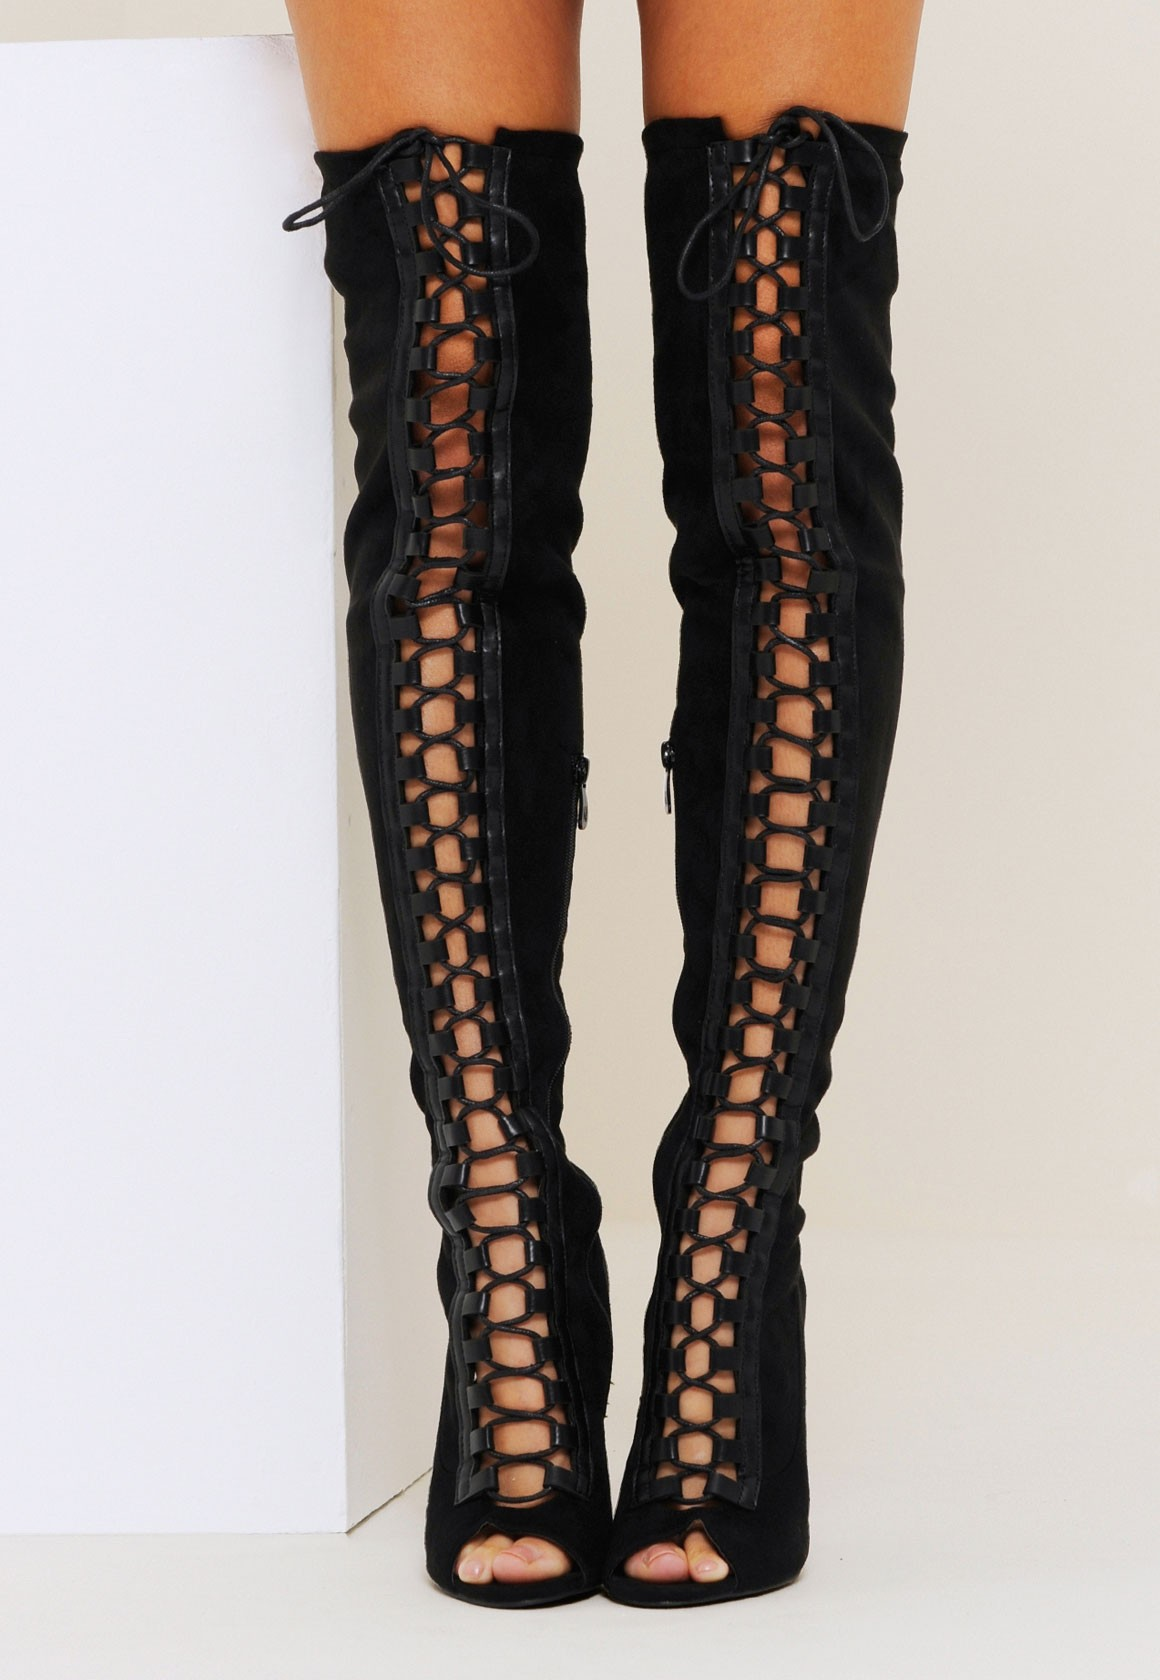 Thigh High Lace Up Open Toe Boots c7ctHwFP